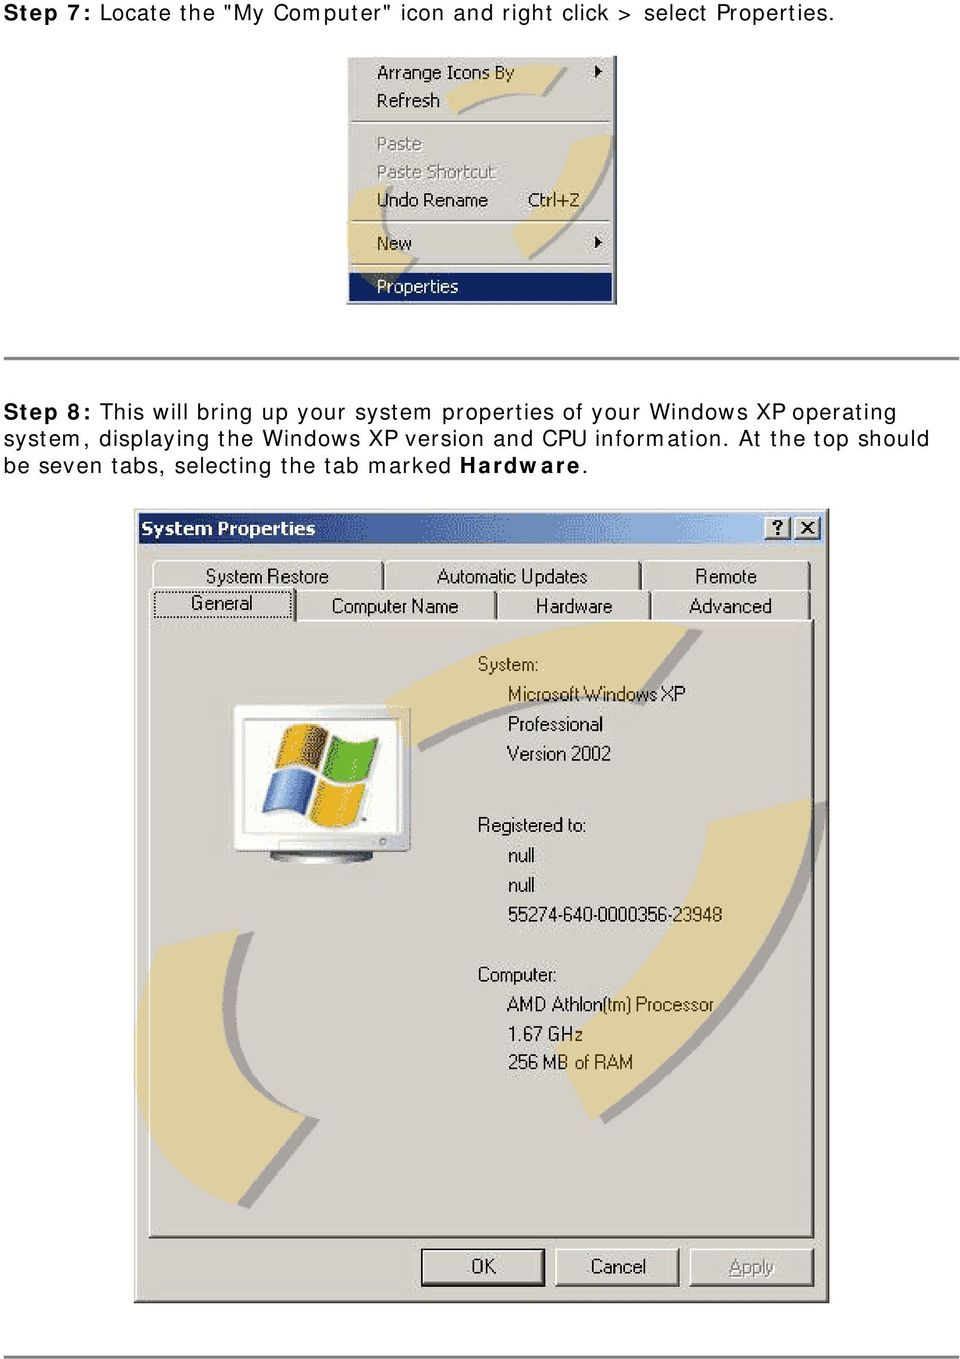 Step 8: This will bring up your system properties of your Windows XP